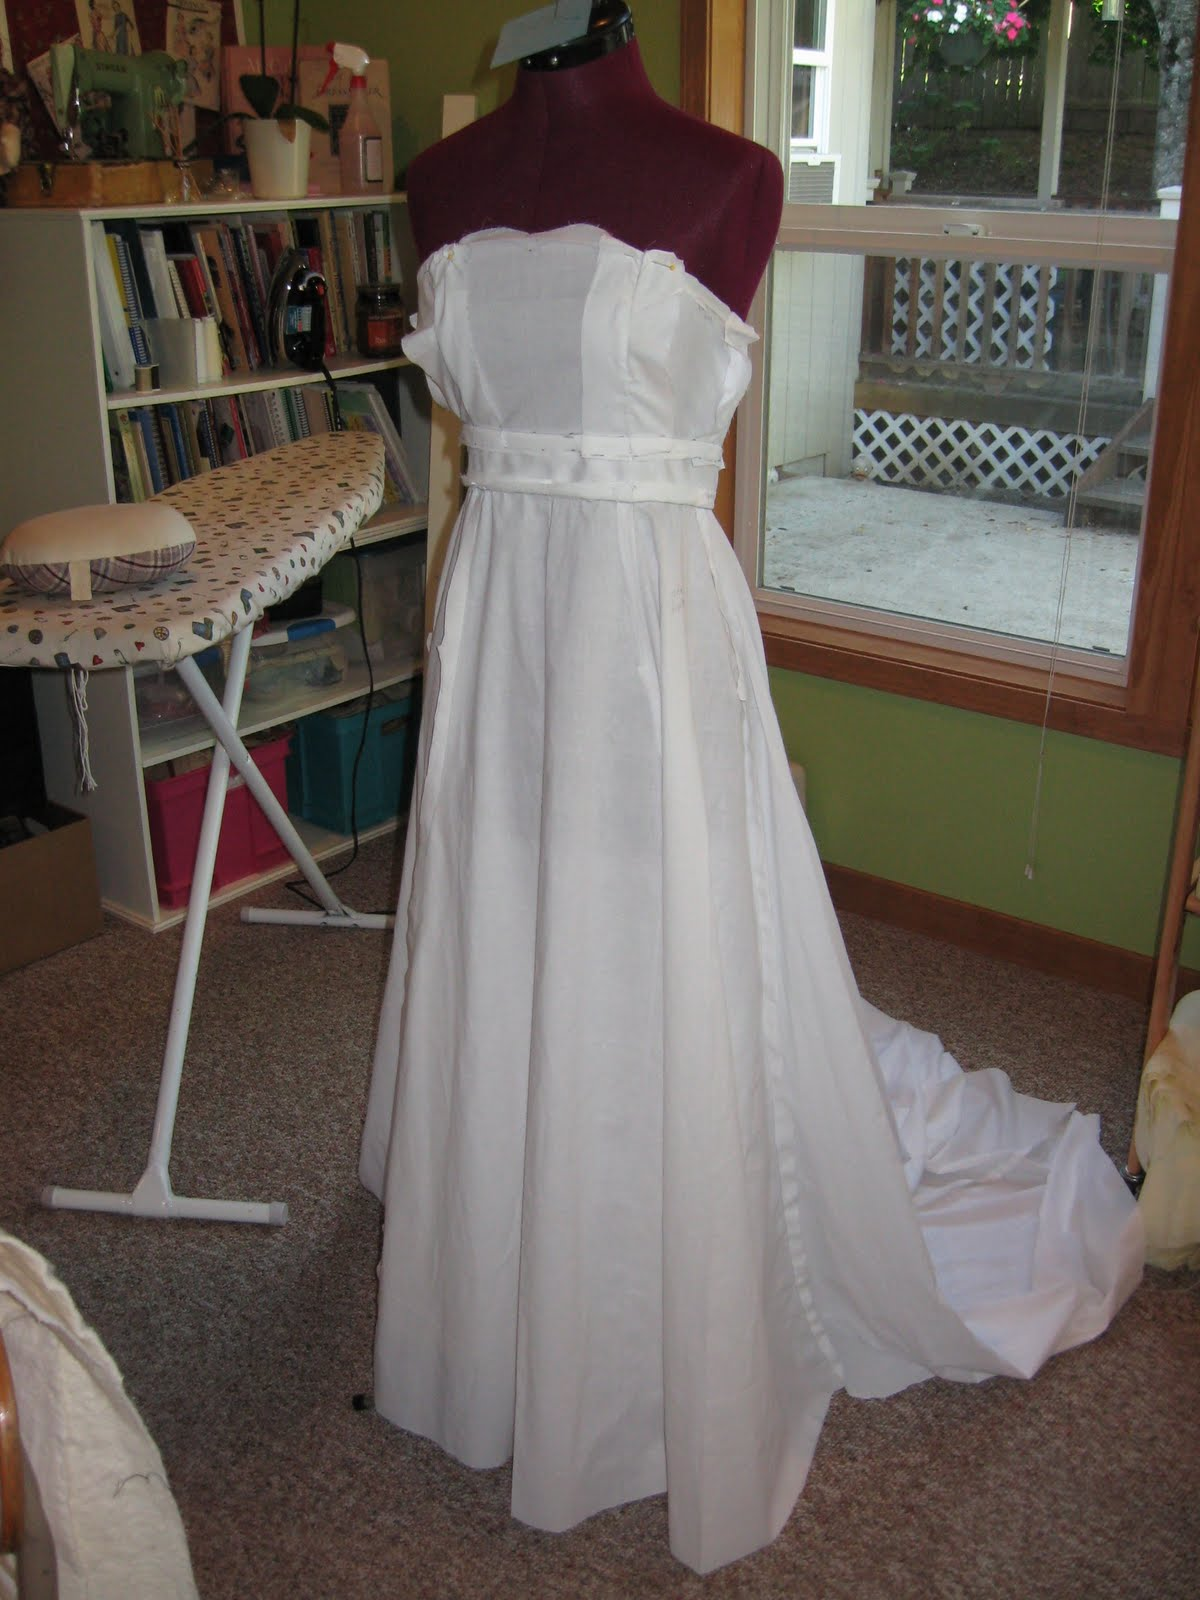 Artistic Quilting Sewing A Wedding Dress